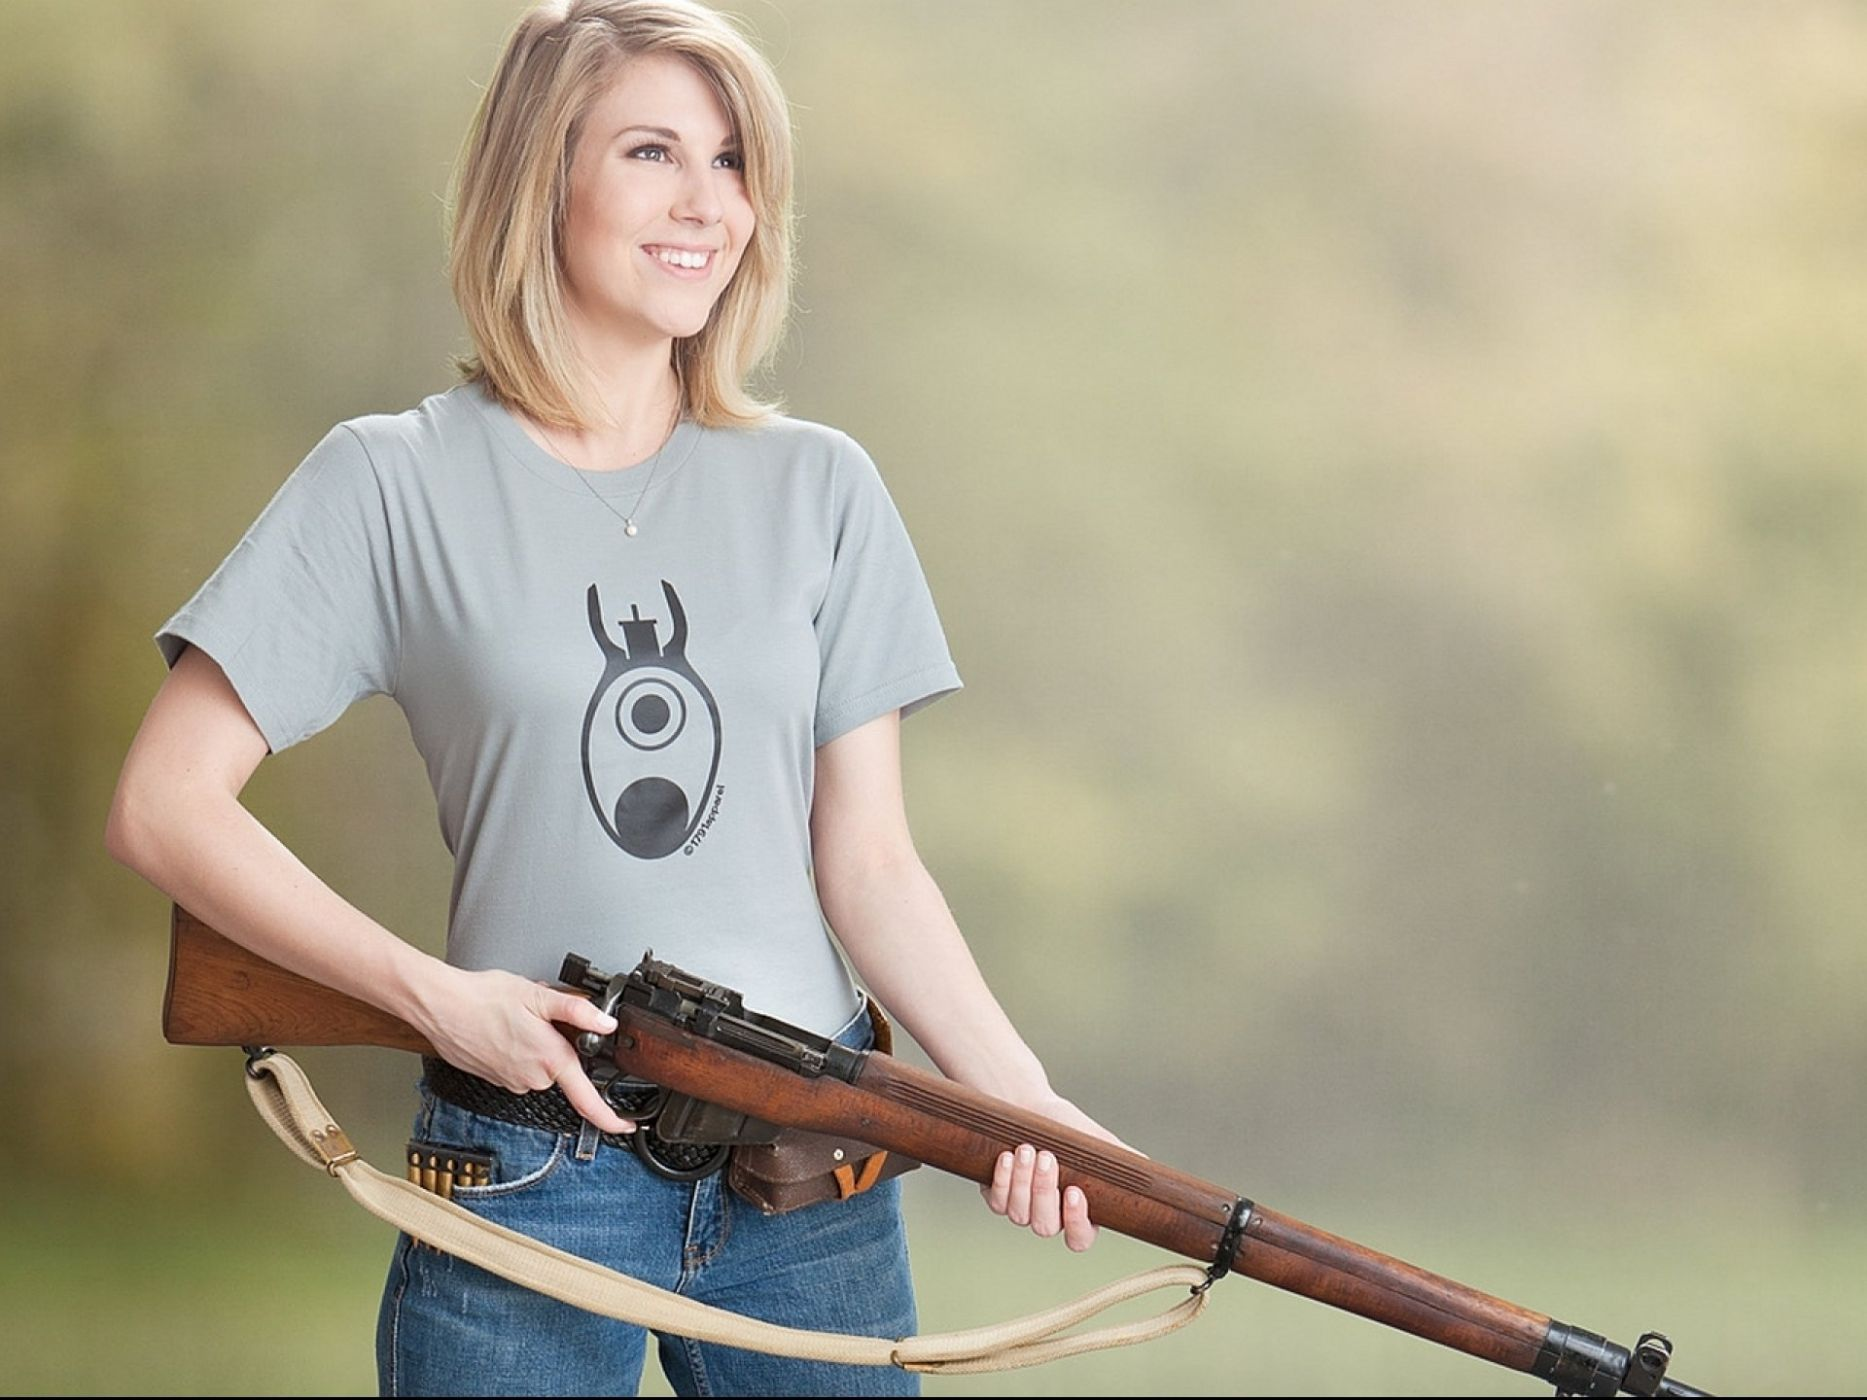 Pictures of girls shooting guns, dose sperm count effect acne